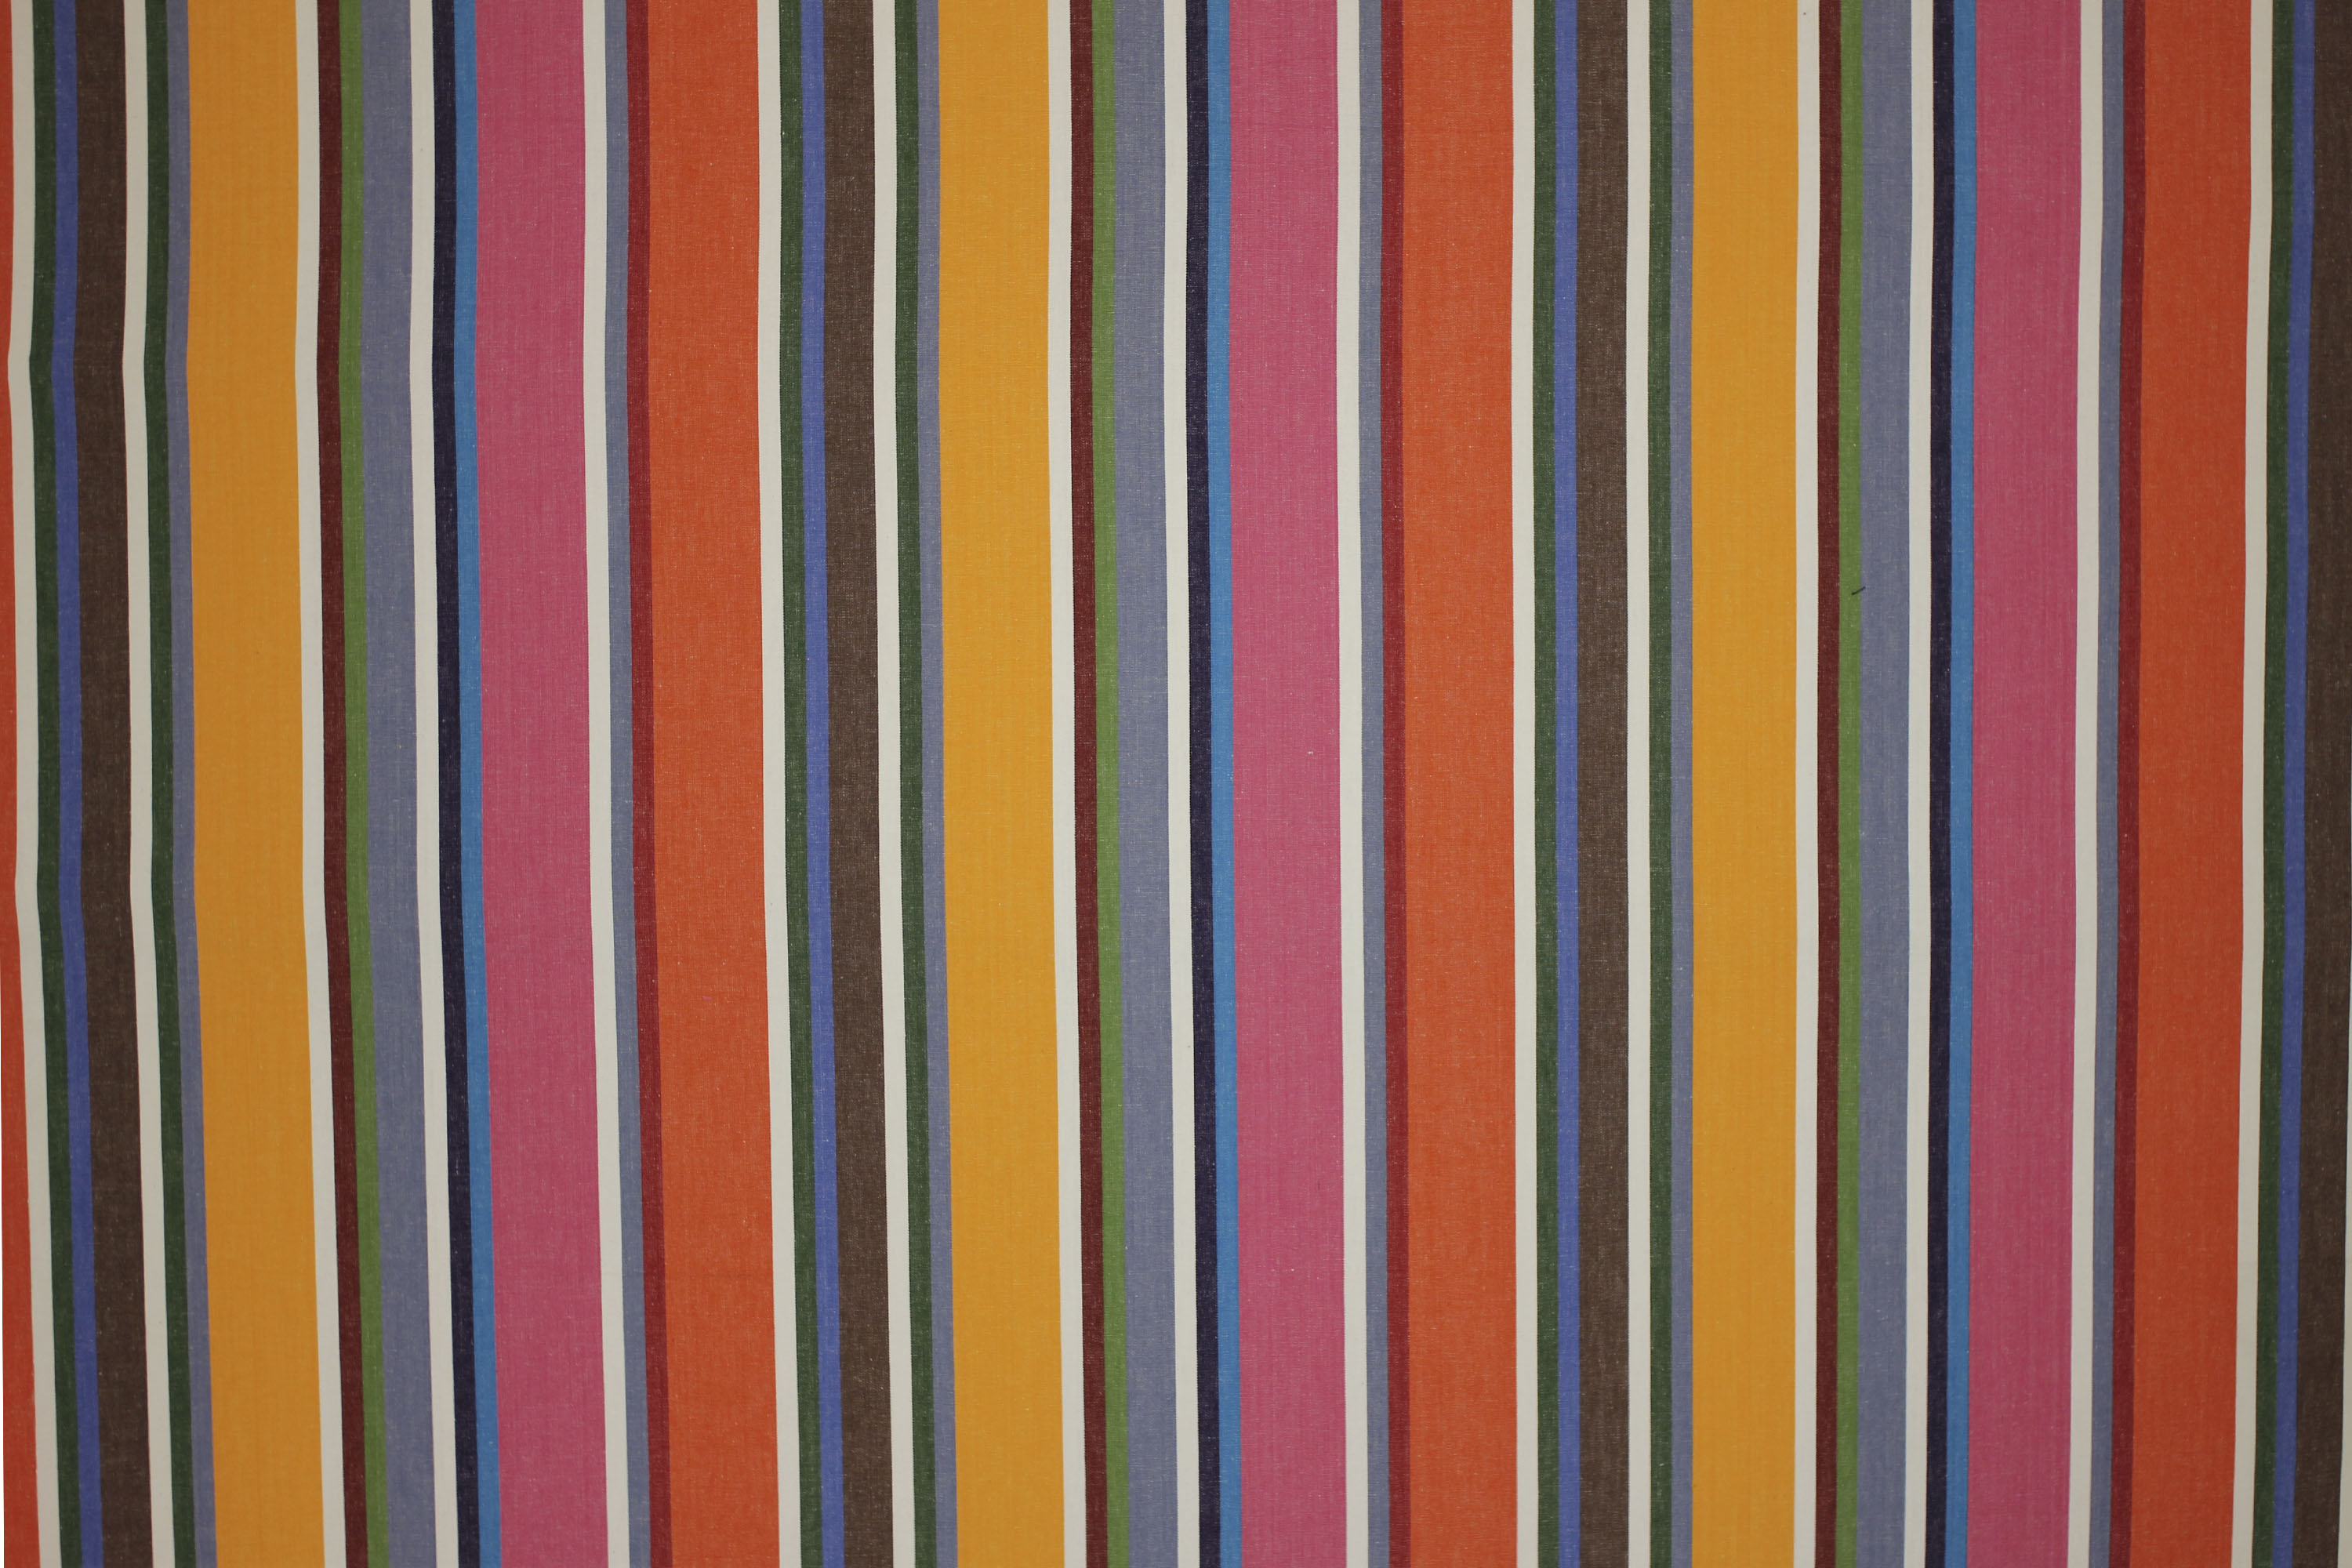 Pink Striped Fabrics | Stripe Cotton Fabrics | Striped Curtain Fabrics | Upholstery Fabrics  Pentathlon Stripes